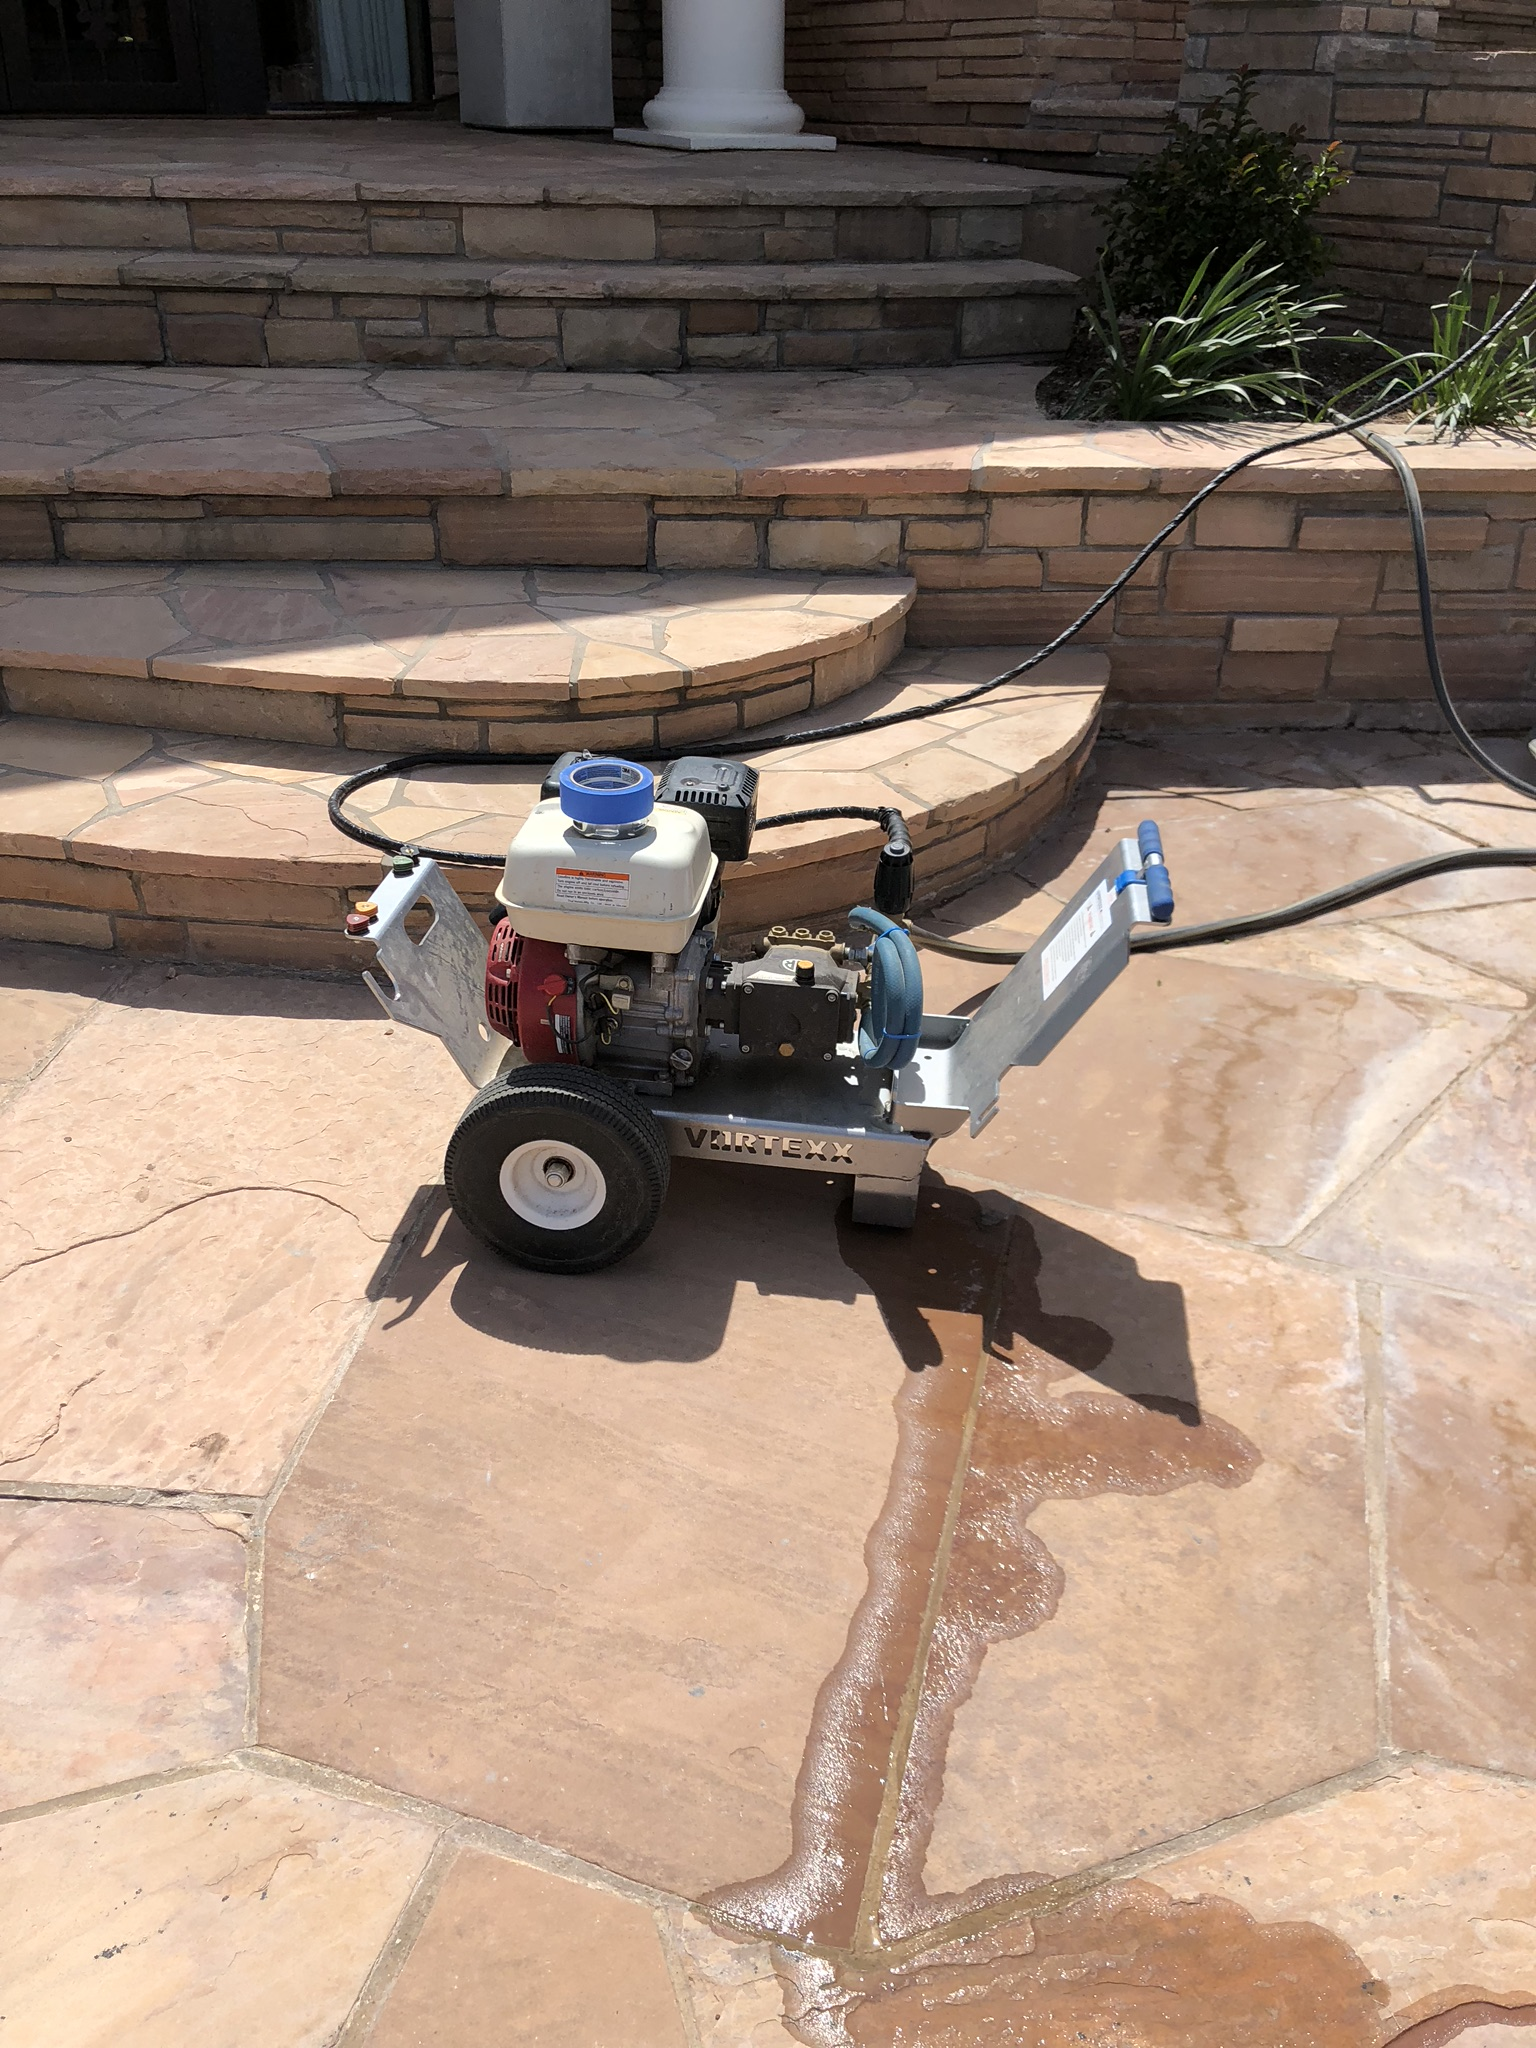 We utilized our pressure sprayer to prepare our flagstone decks prior to installing the Stone Armor product. Pressure washing your deck is a very important step in the installation process. It removes small dust, debris and miscellaneous particles from your deck. This provides a much better bond between the stone and the Stone Armor once applied.